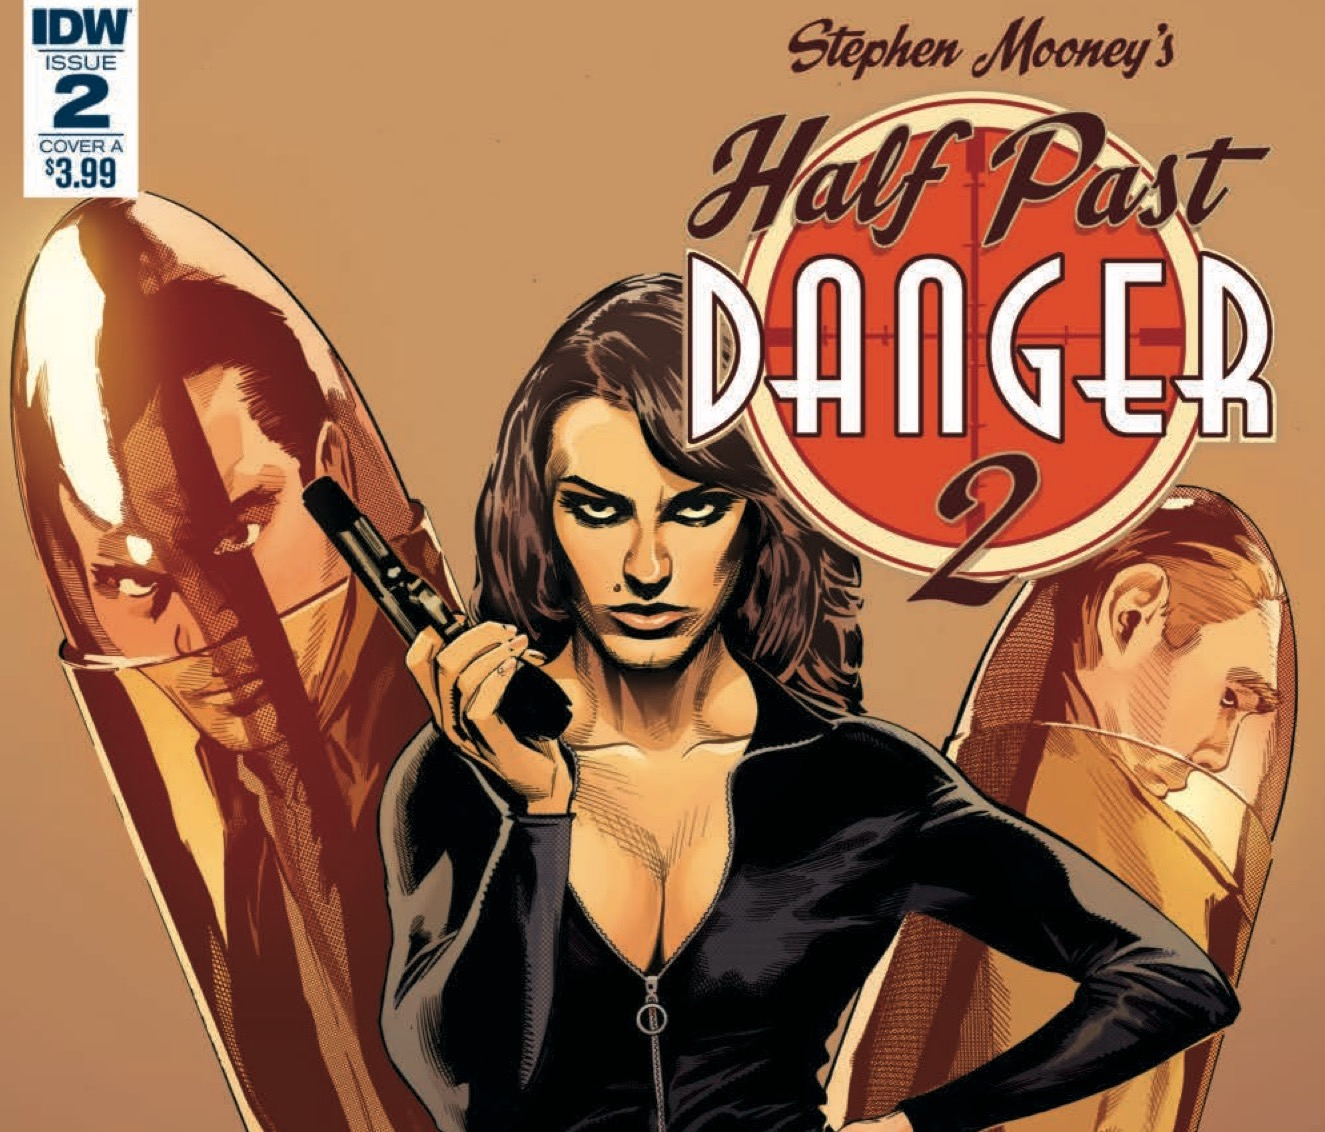 [EXCLUSIVE] IDW Preview: Half Past Danger II: Dead To Reichs #2